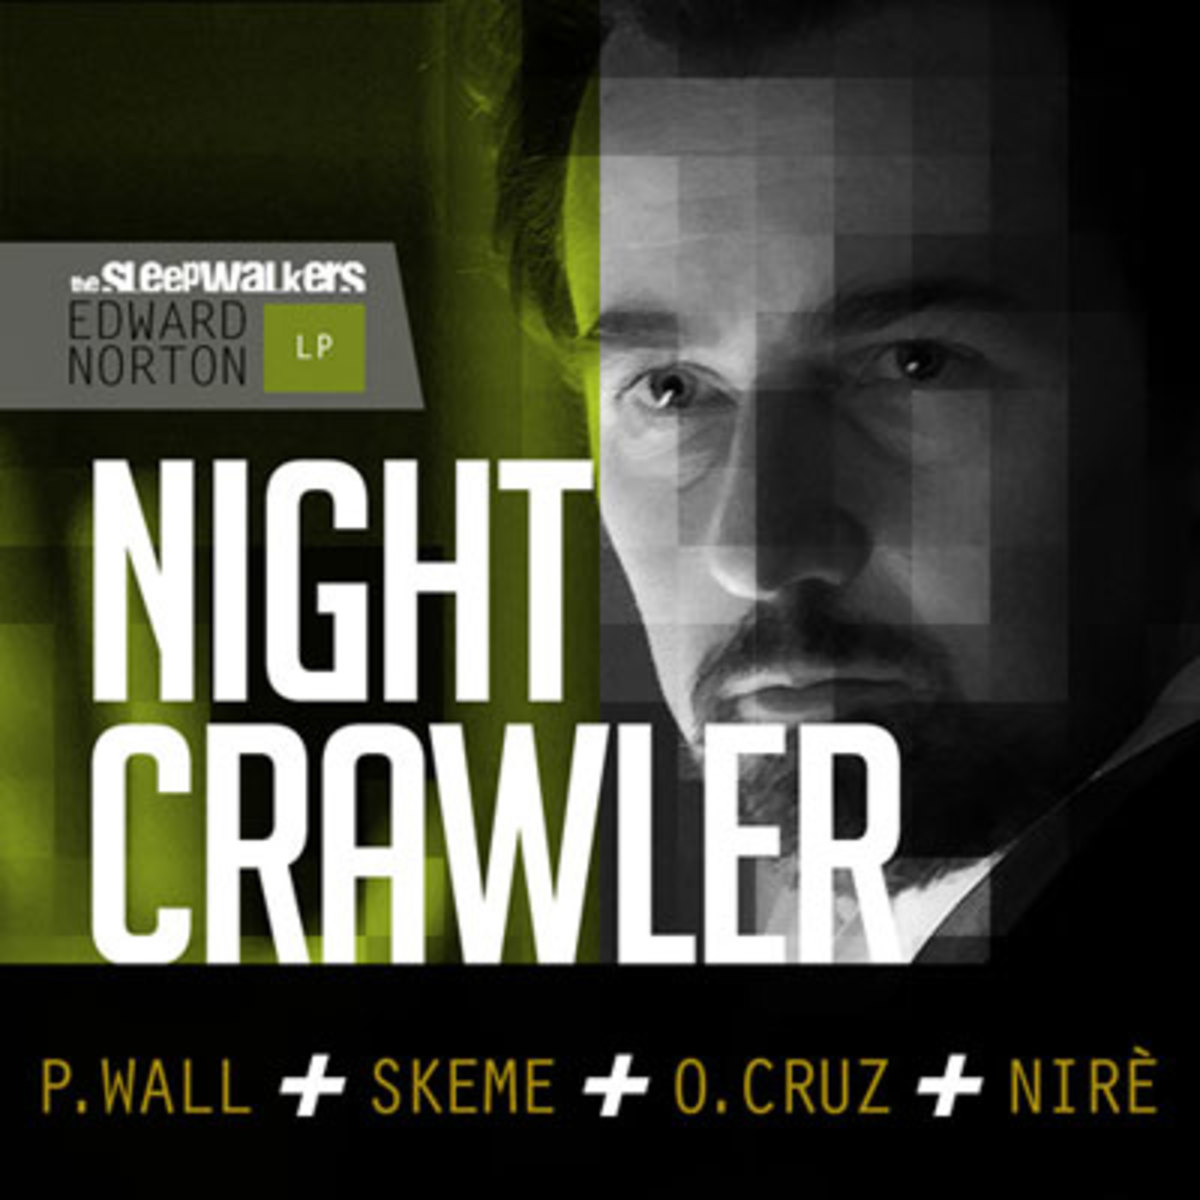 sleepwalkers-nightcrawler.jpg